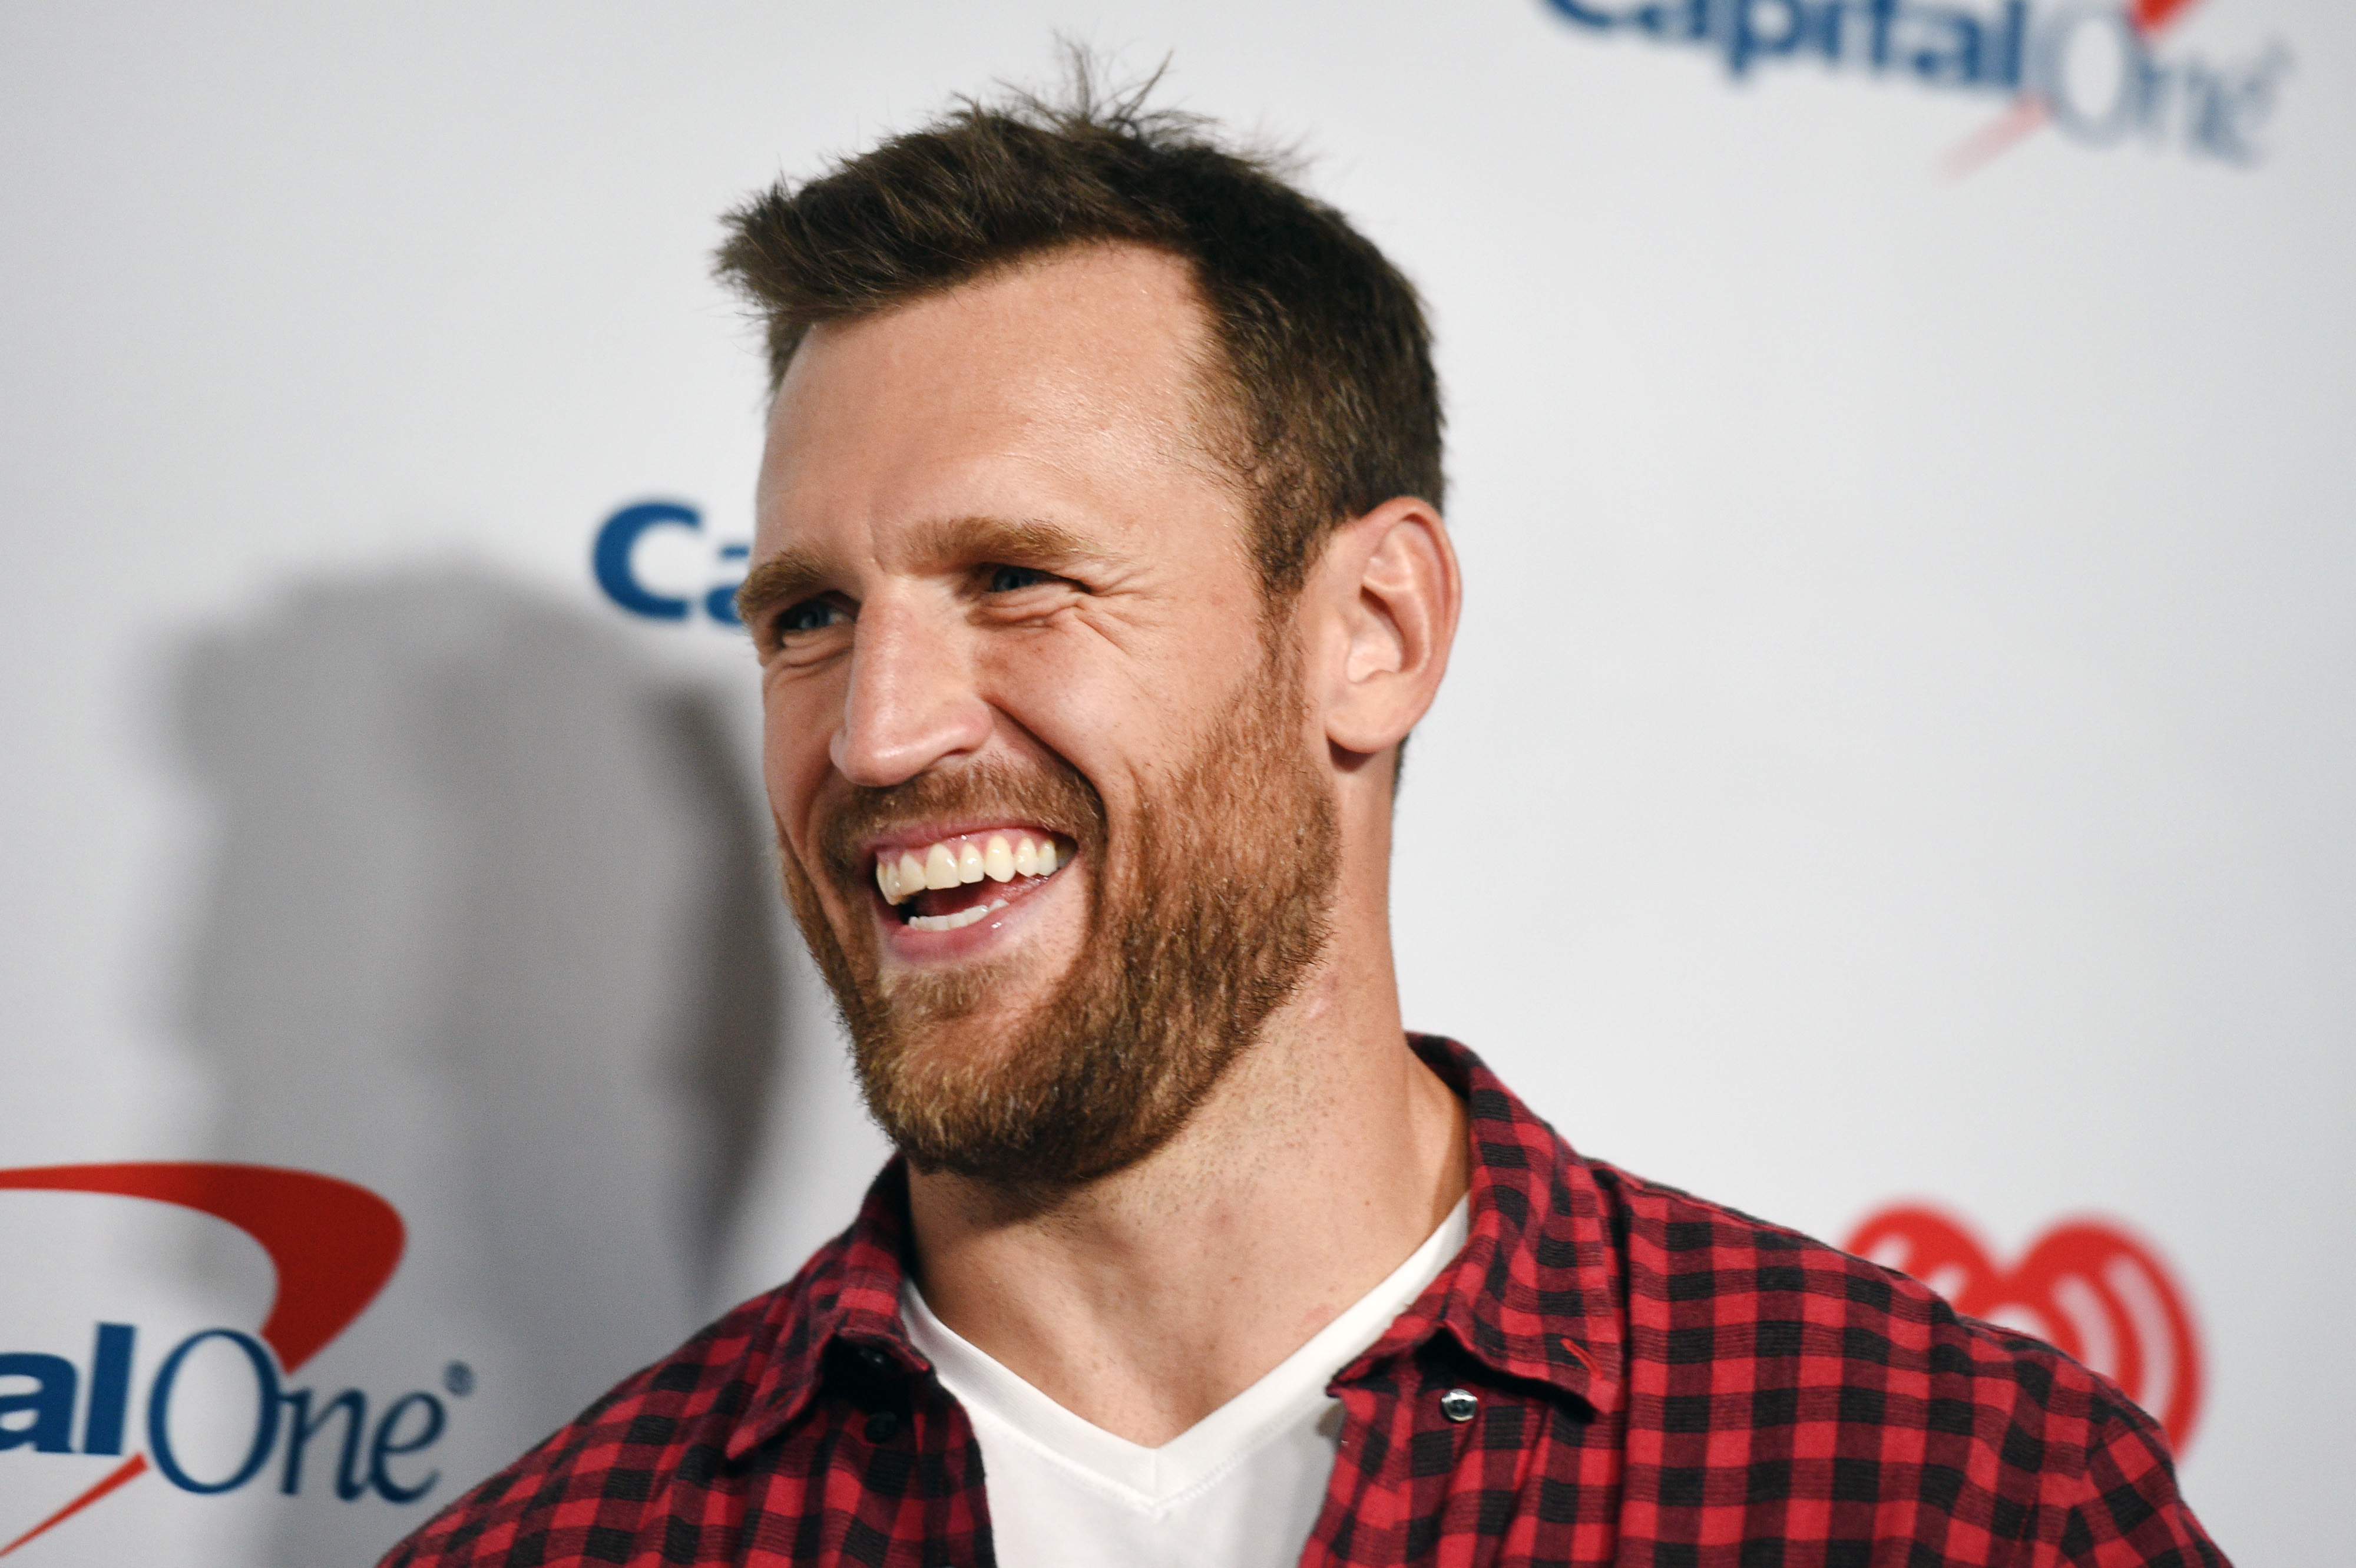 LAS VEGAS, NEVADA - SEPTEMBER 20: (EDITORIAL USE ONLY) Brooks Laich attends the 2019 iHeartRadio Music Festival at T-Mobile Arena on September 20, 2019 in Las Vegas, Nevada.